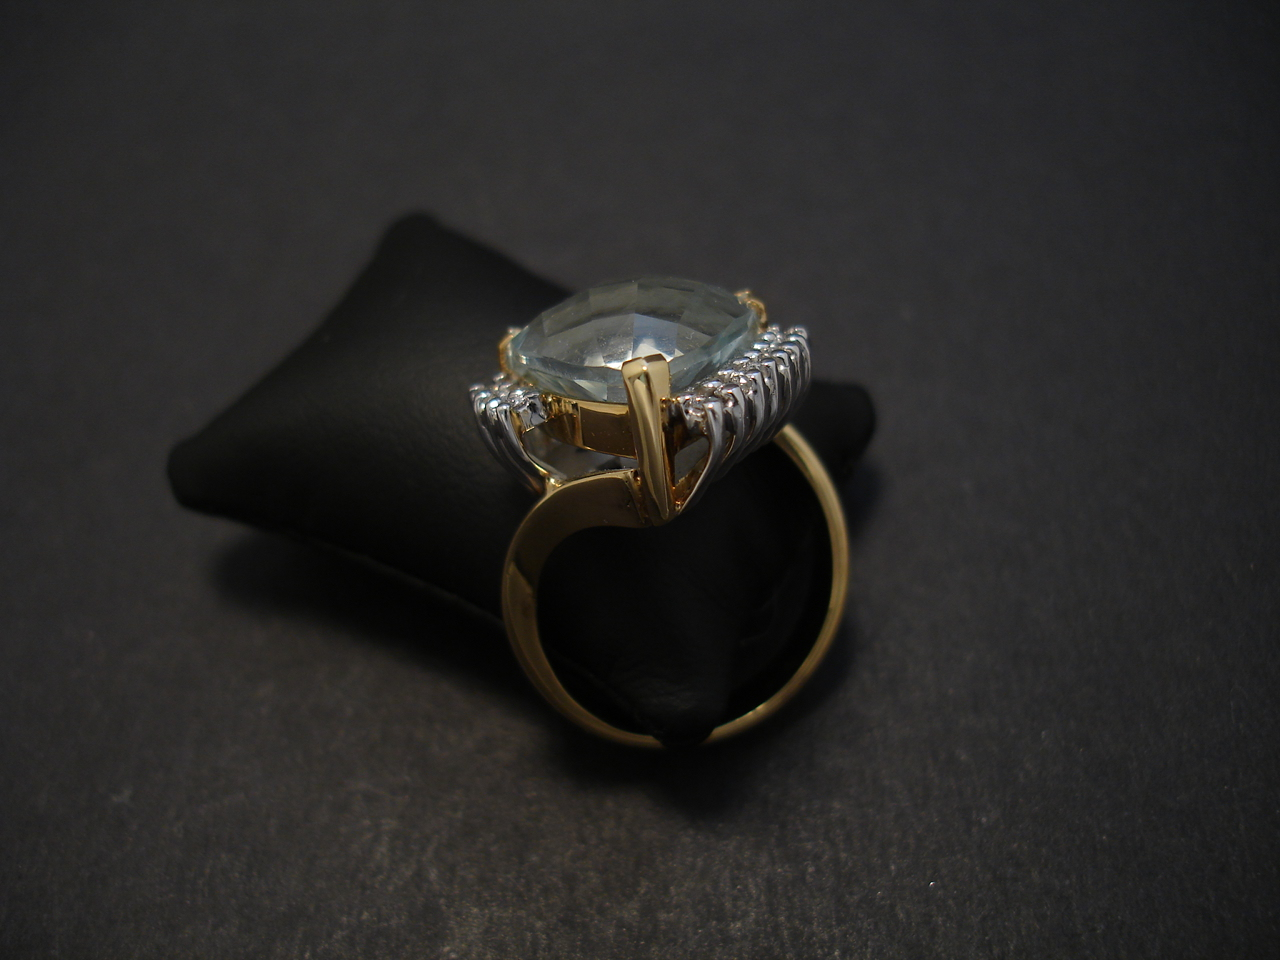 sydney handmade 18ct gold ring christopher william